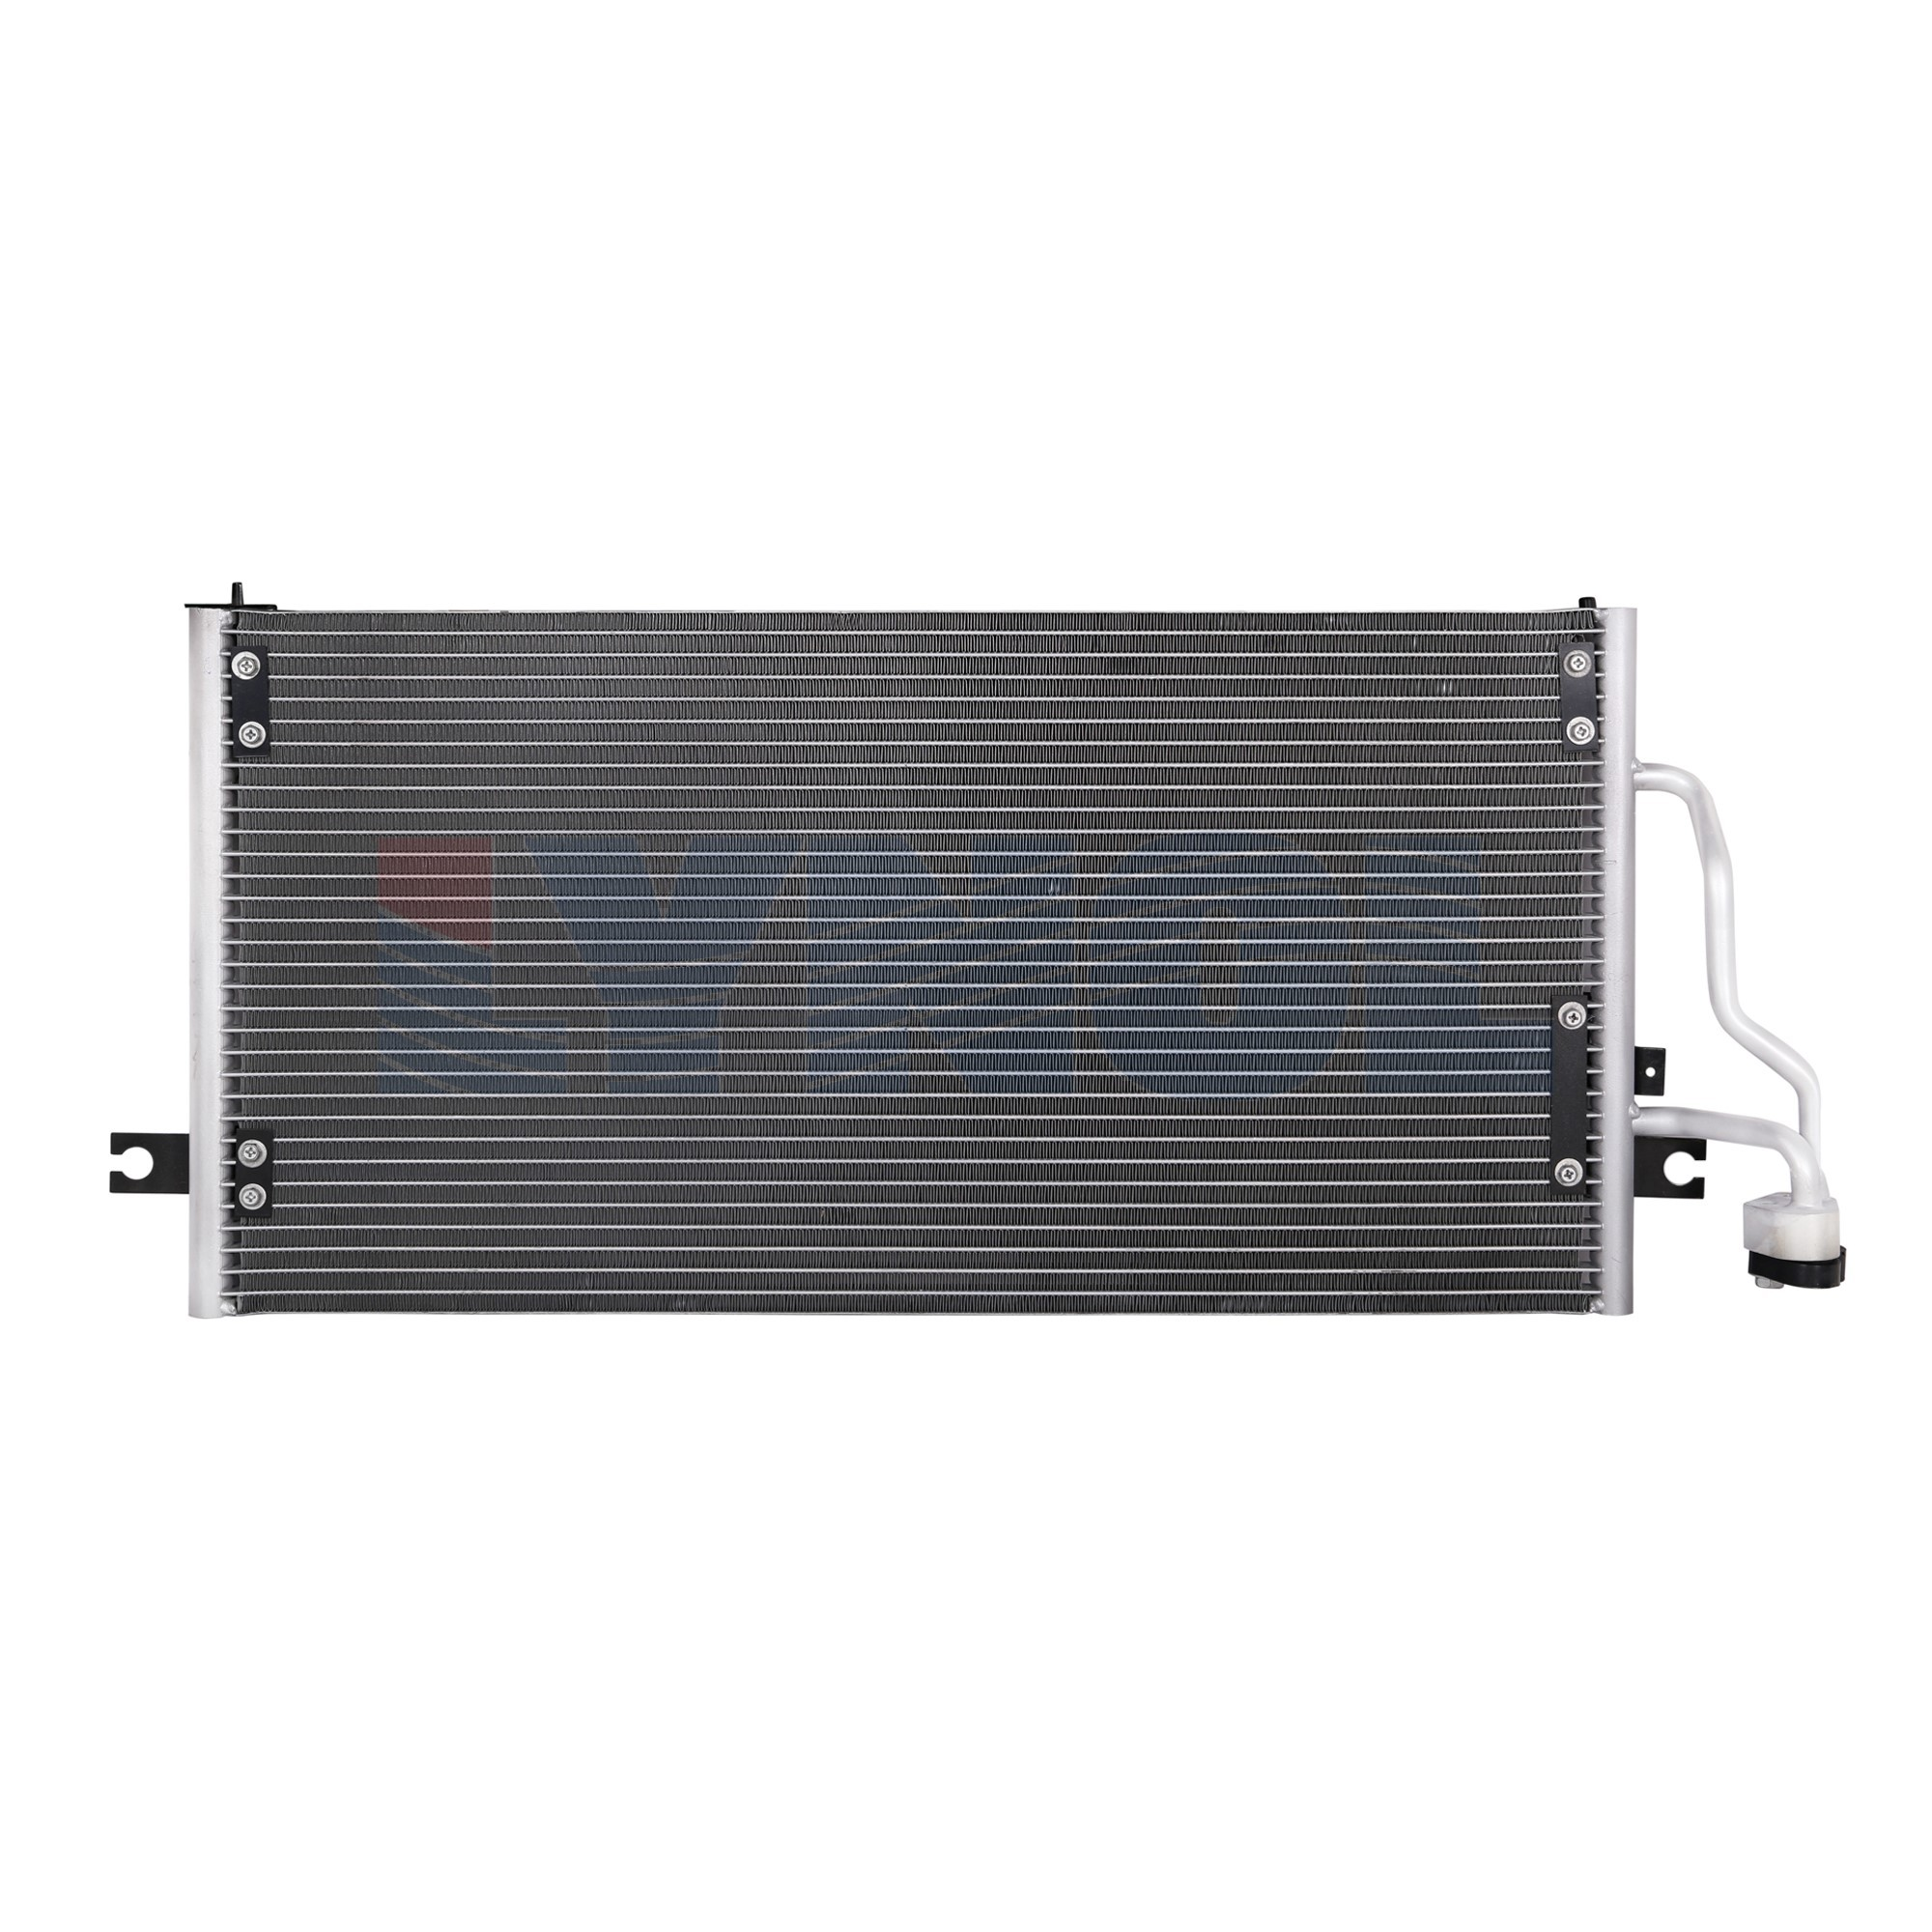 AC4538 - AC Condensers  - 92-96 Dodge Colt, Eagle Summit, Mitsubishi Mirage, Plymouth Colt